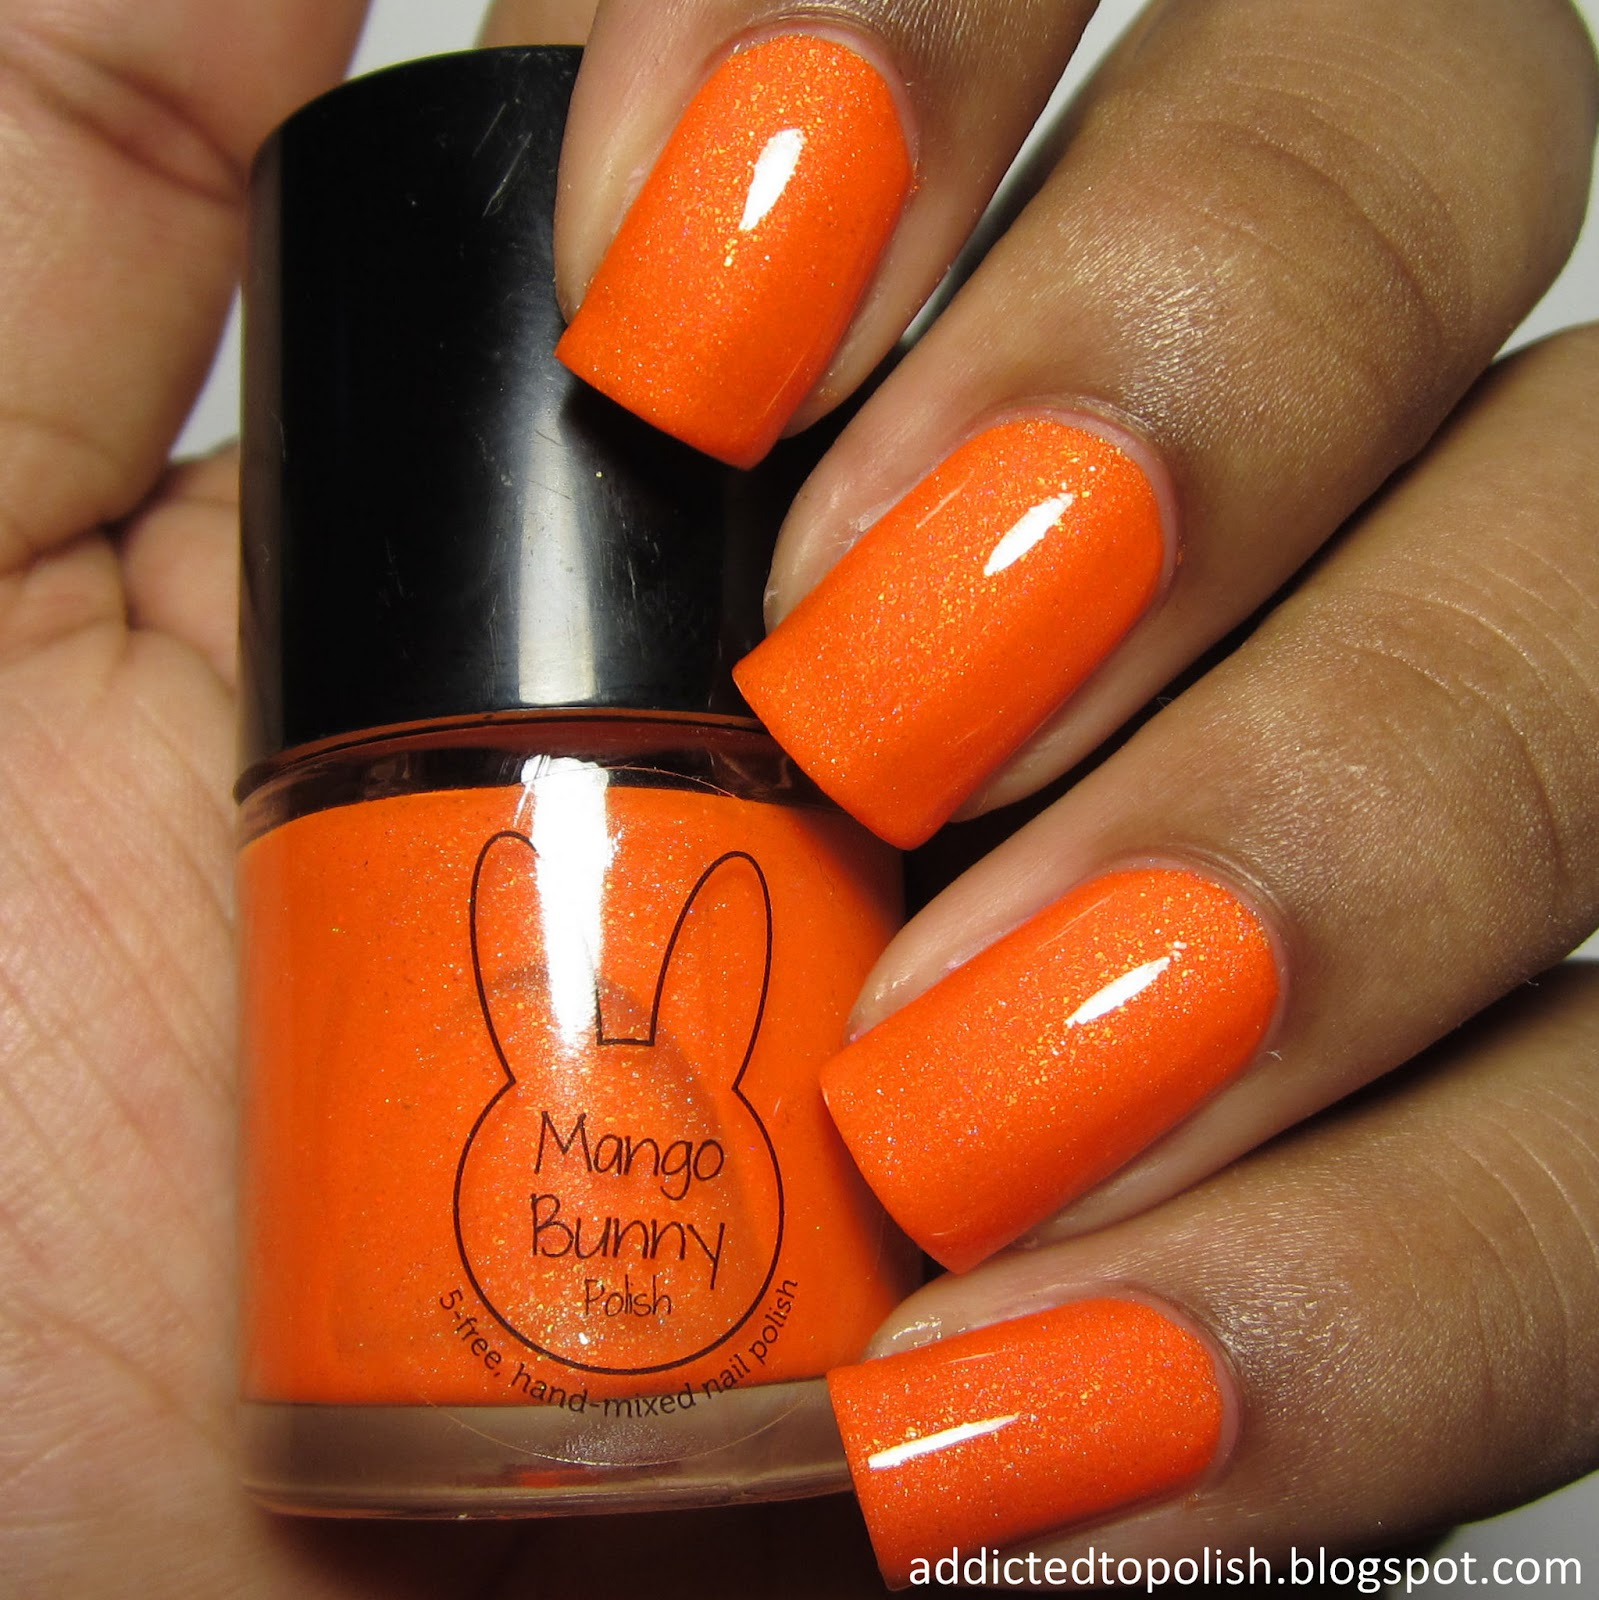 mango bunny polish come to papaya sunkissed neons